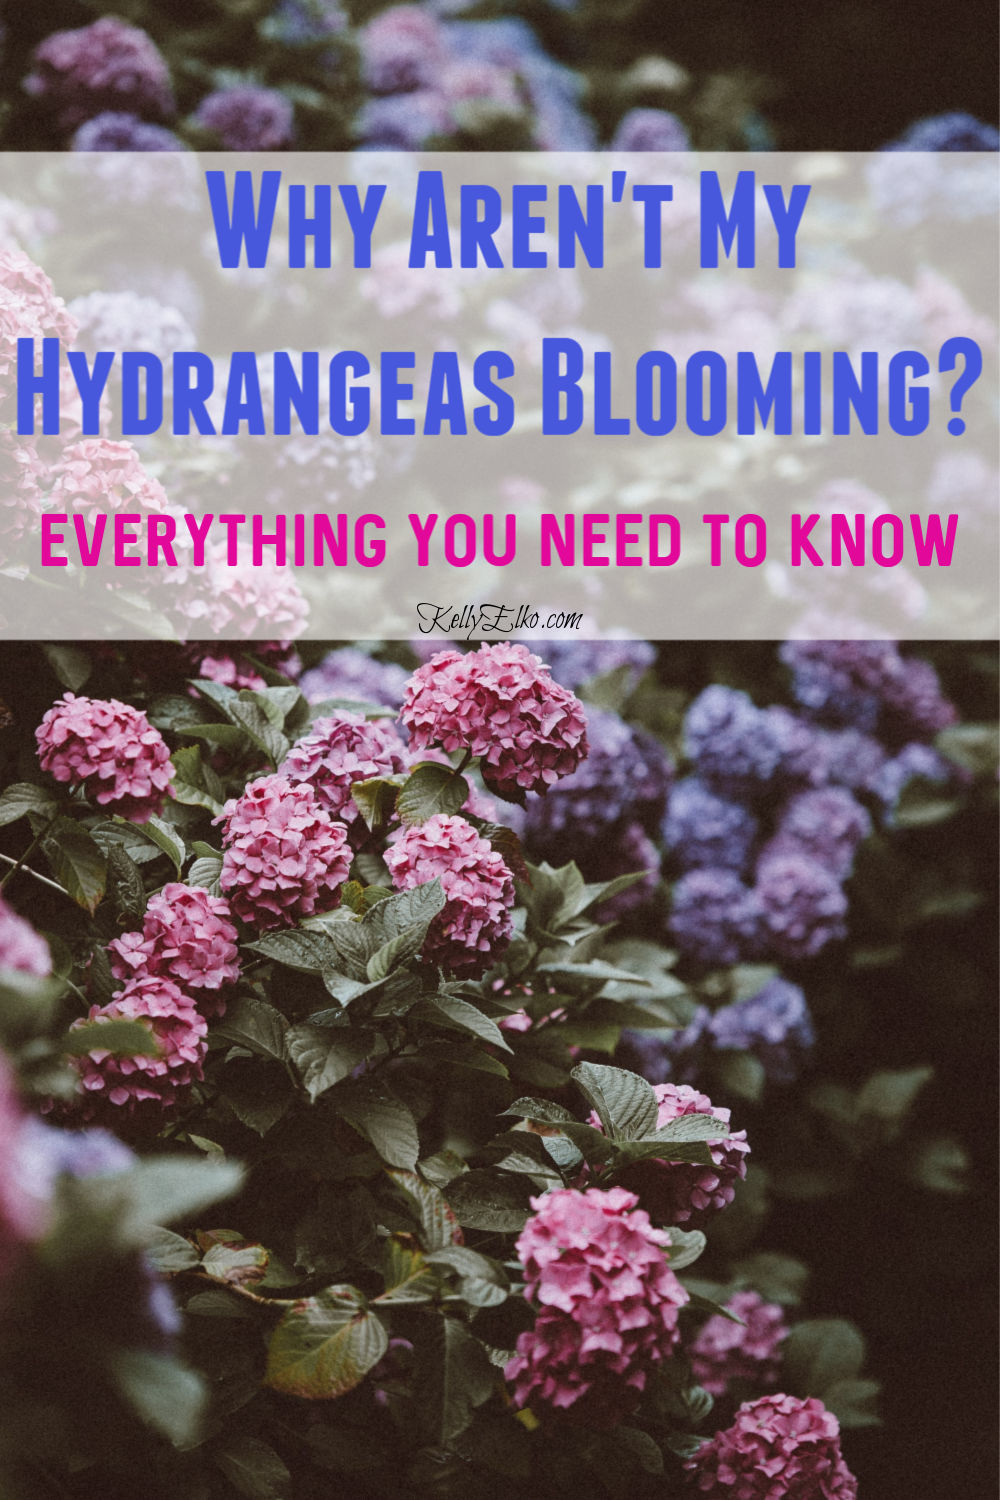 Everything You Need to Know to Get Your Hydrangeas to Bloom kellyelko.com #gardening #gardens #gardeningtips #hydrangeas #hydrangea #perennials #landscaping #flowers